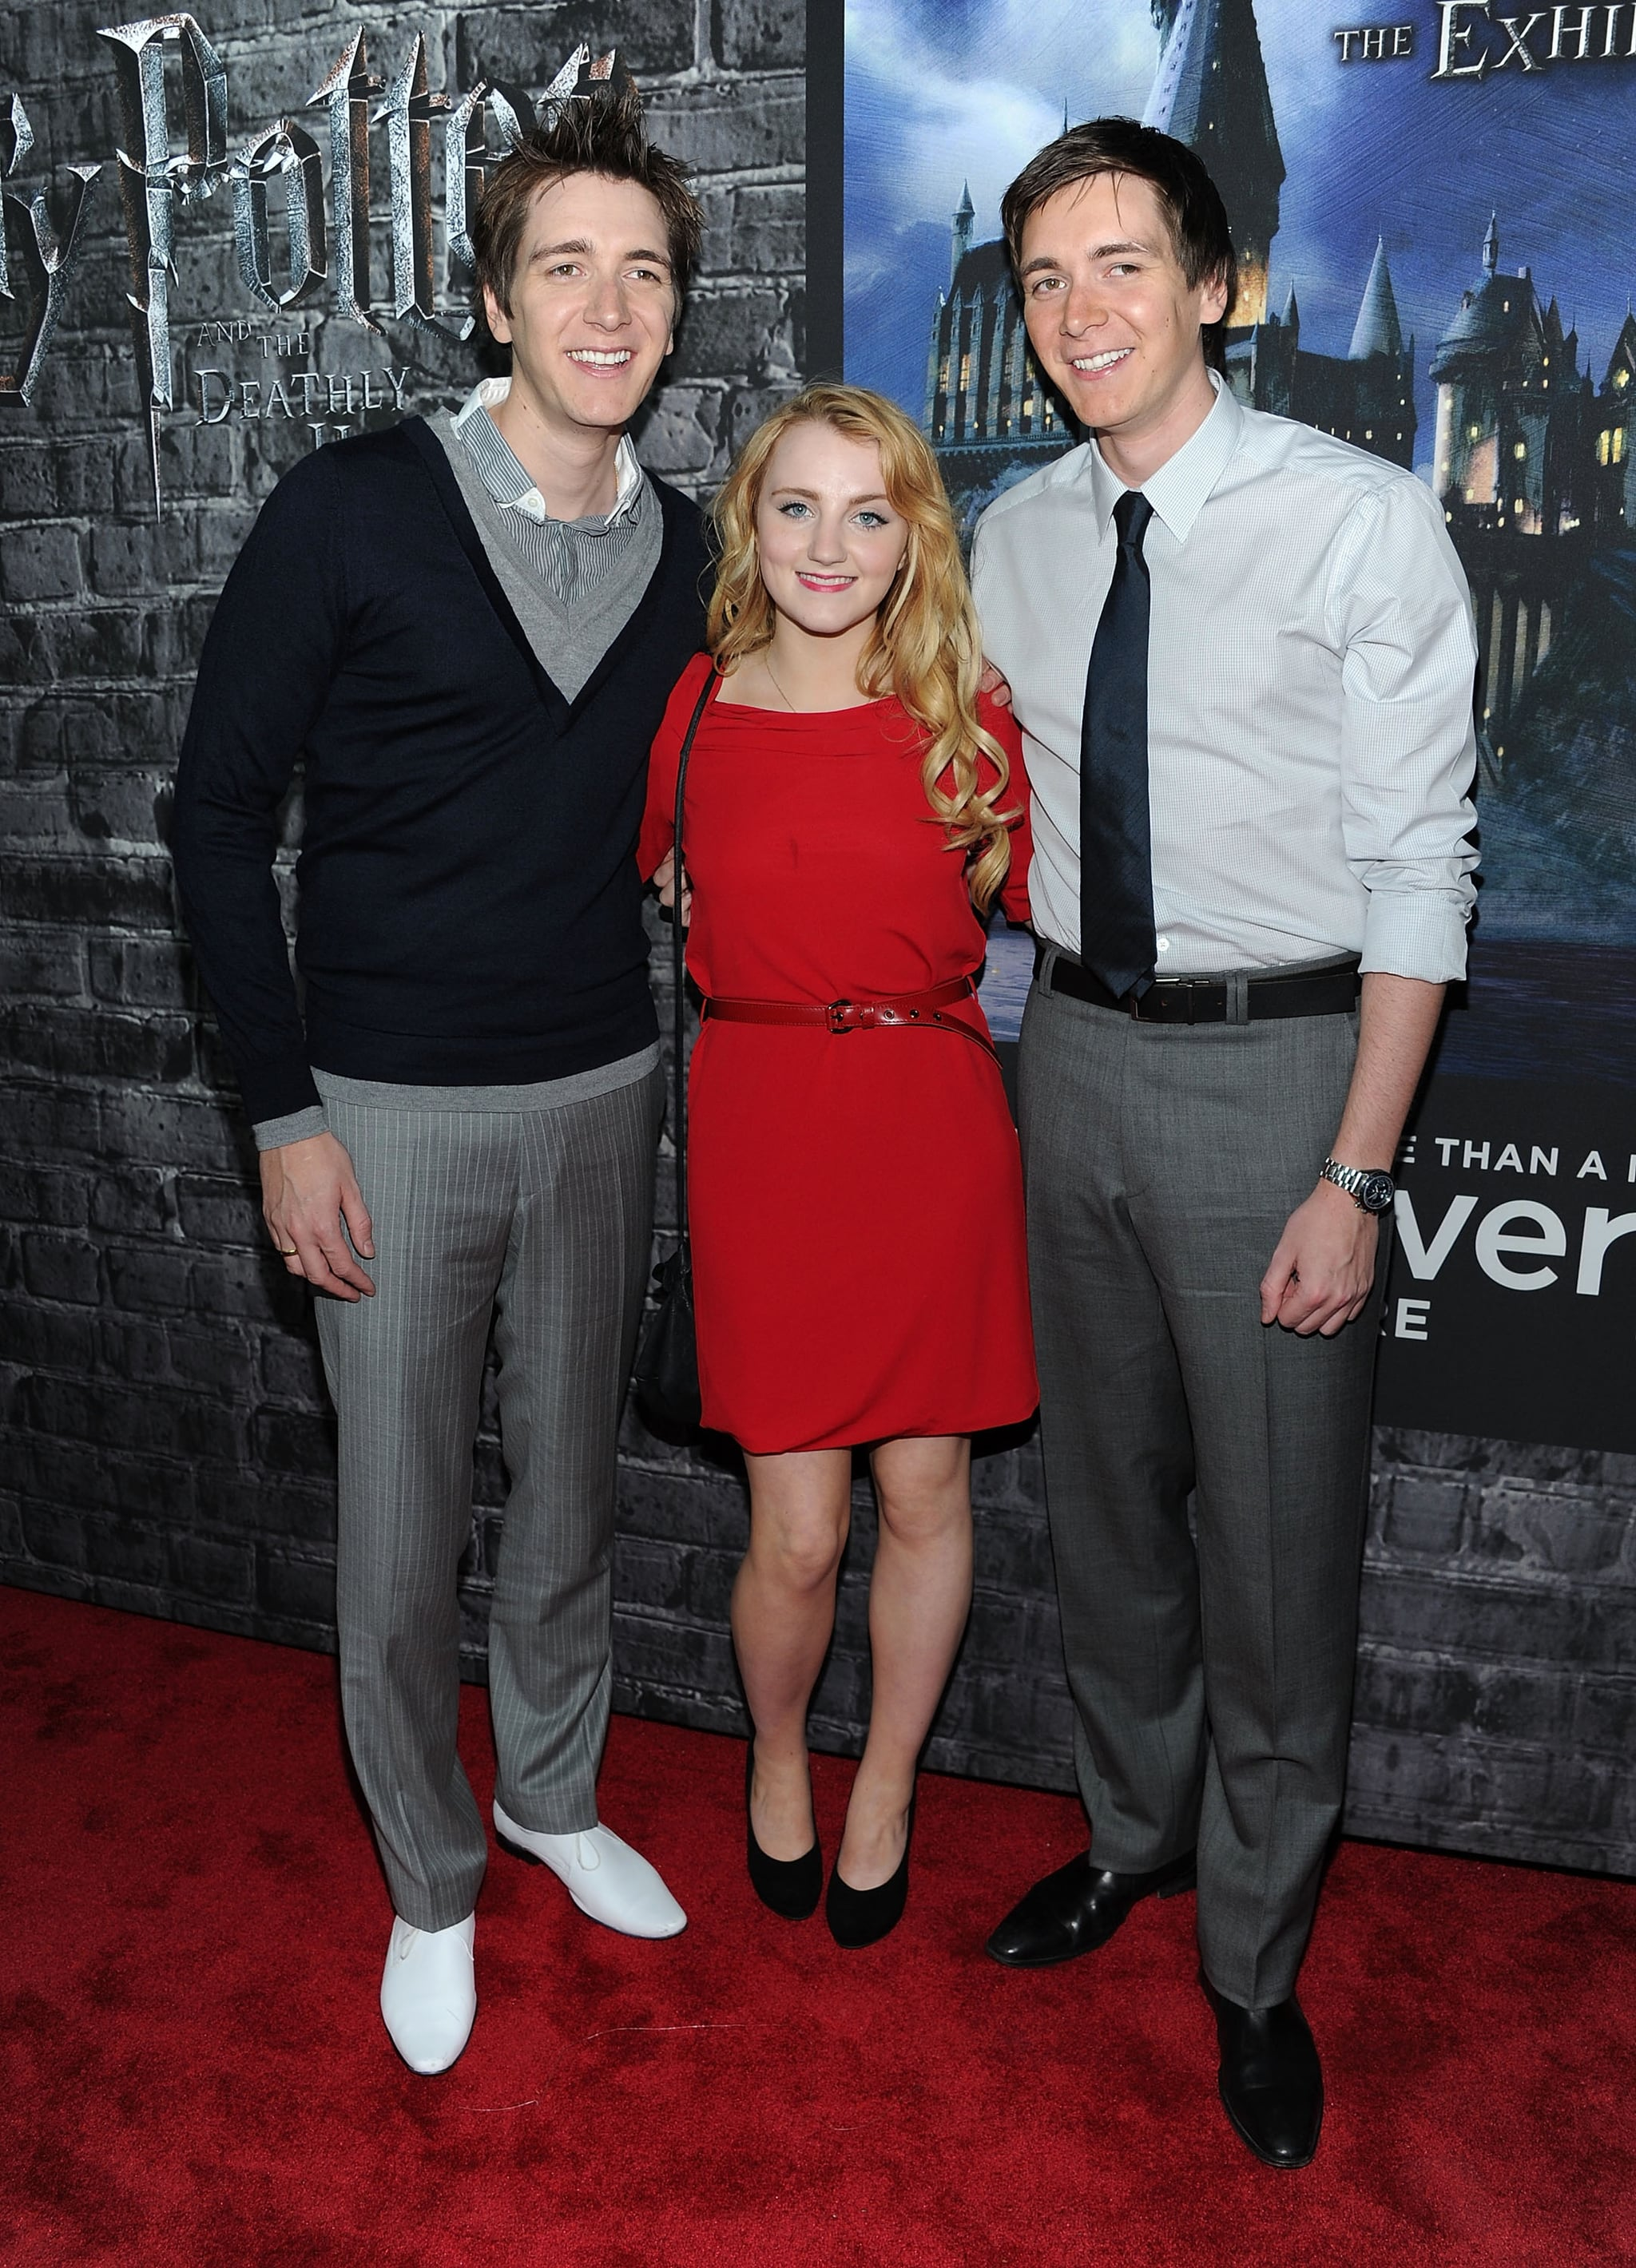 James Phelps, Evanna Lynch and Oliver Phelps